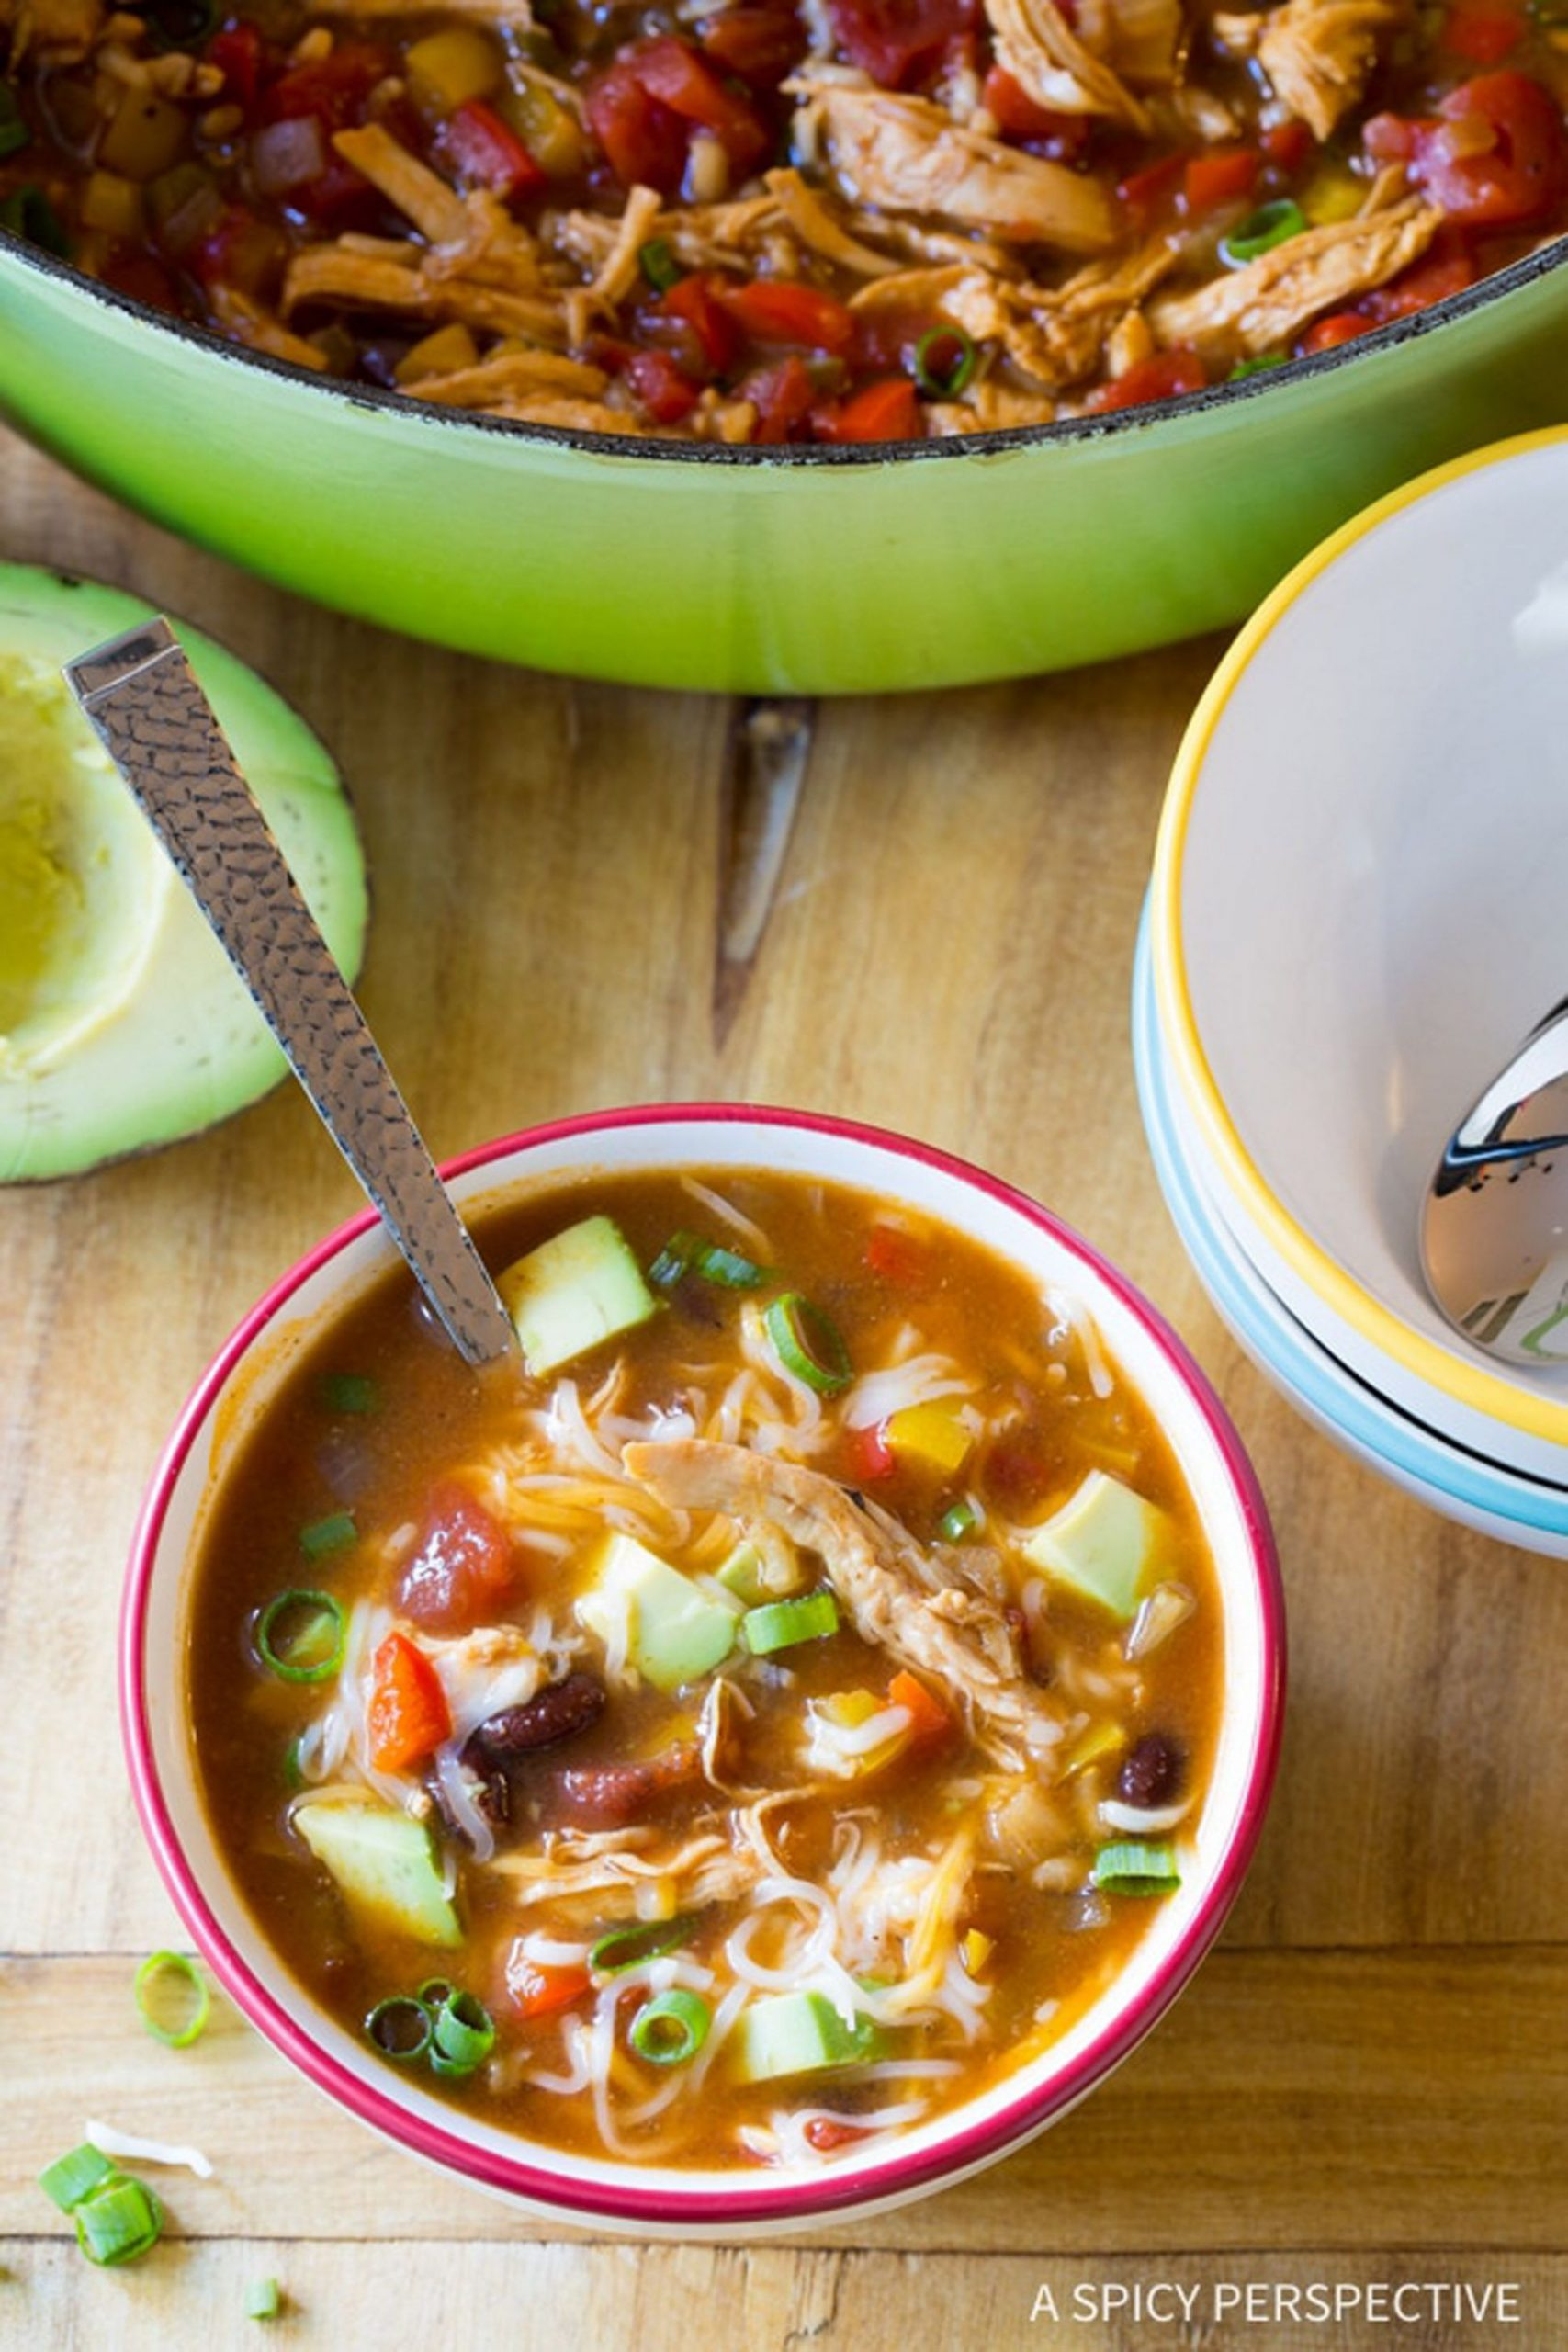 11 Best Healthy Soup Recipes - Quick & Easy Low Calorie Soups